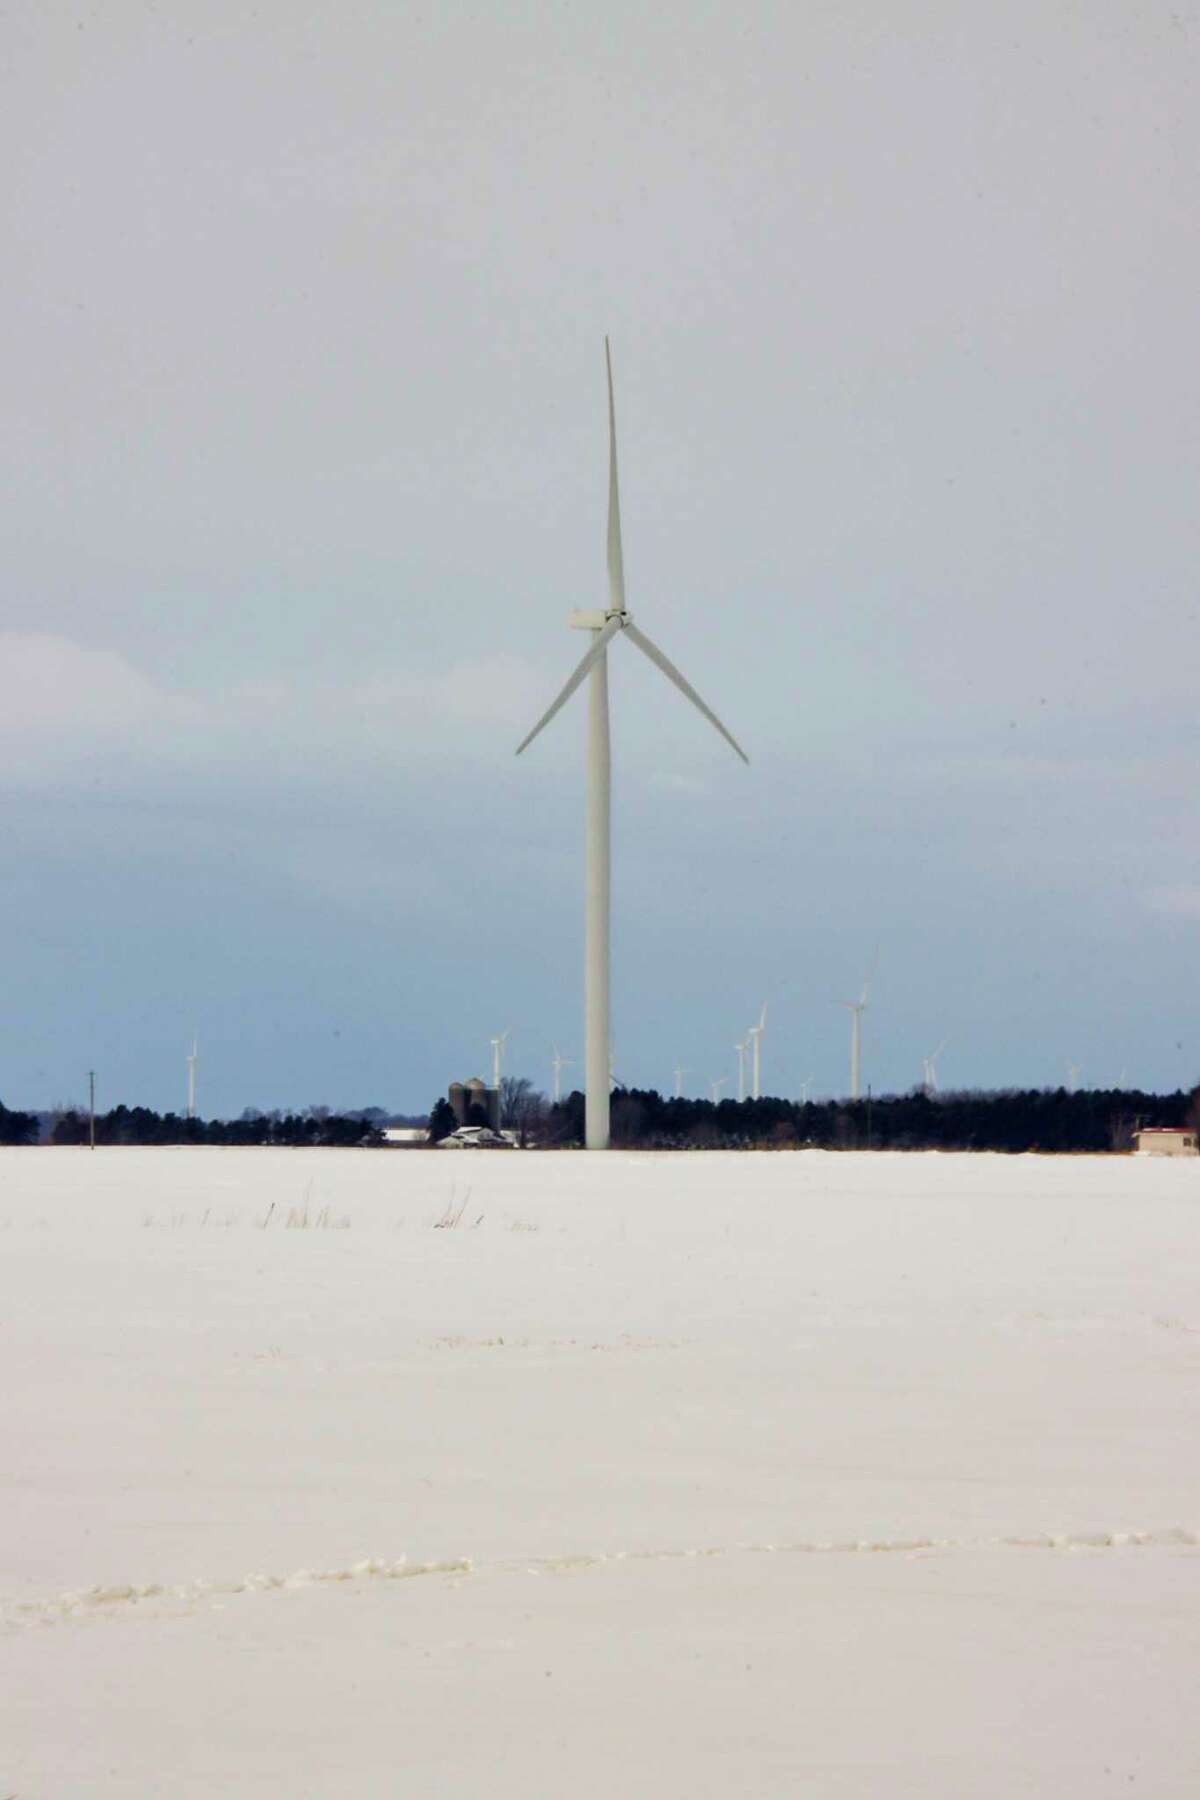 While some people may hate on wind turbines and power transmission lines, DTE Energy officials say the power grid in the Upper Thumb has enough redundancies to avoid blackouts like Texas recently experienced. (Scott Nunn/Huron Daily Tribune)